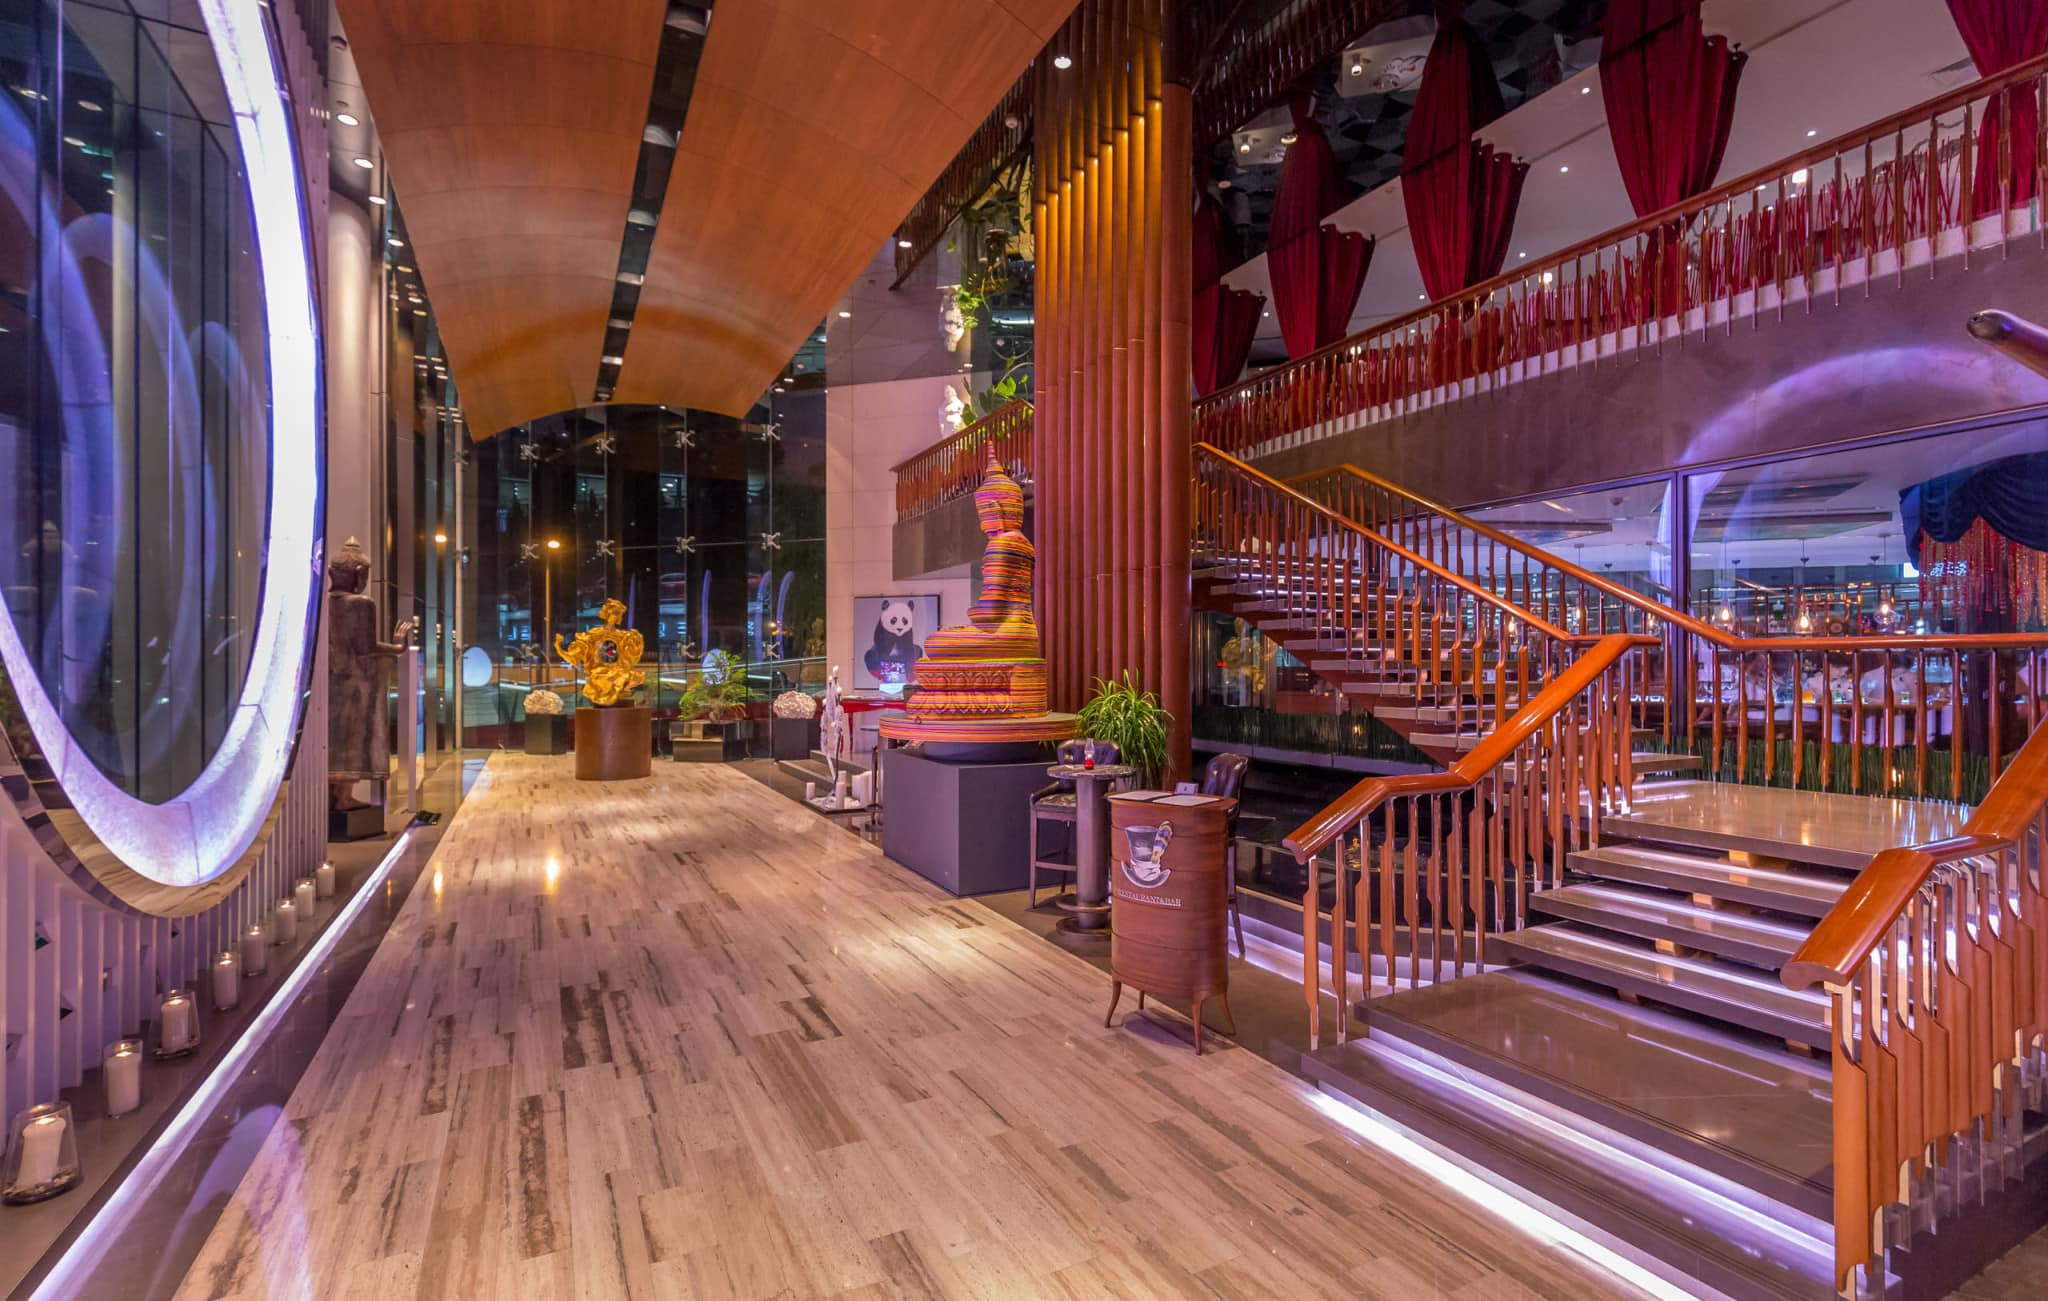 CHINA - Hotel Éclat Beijing: luxury meets art at this boutique hotel – Chris Travel Blog | CTB Global®